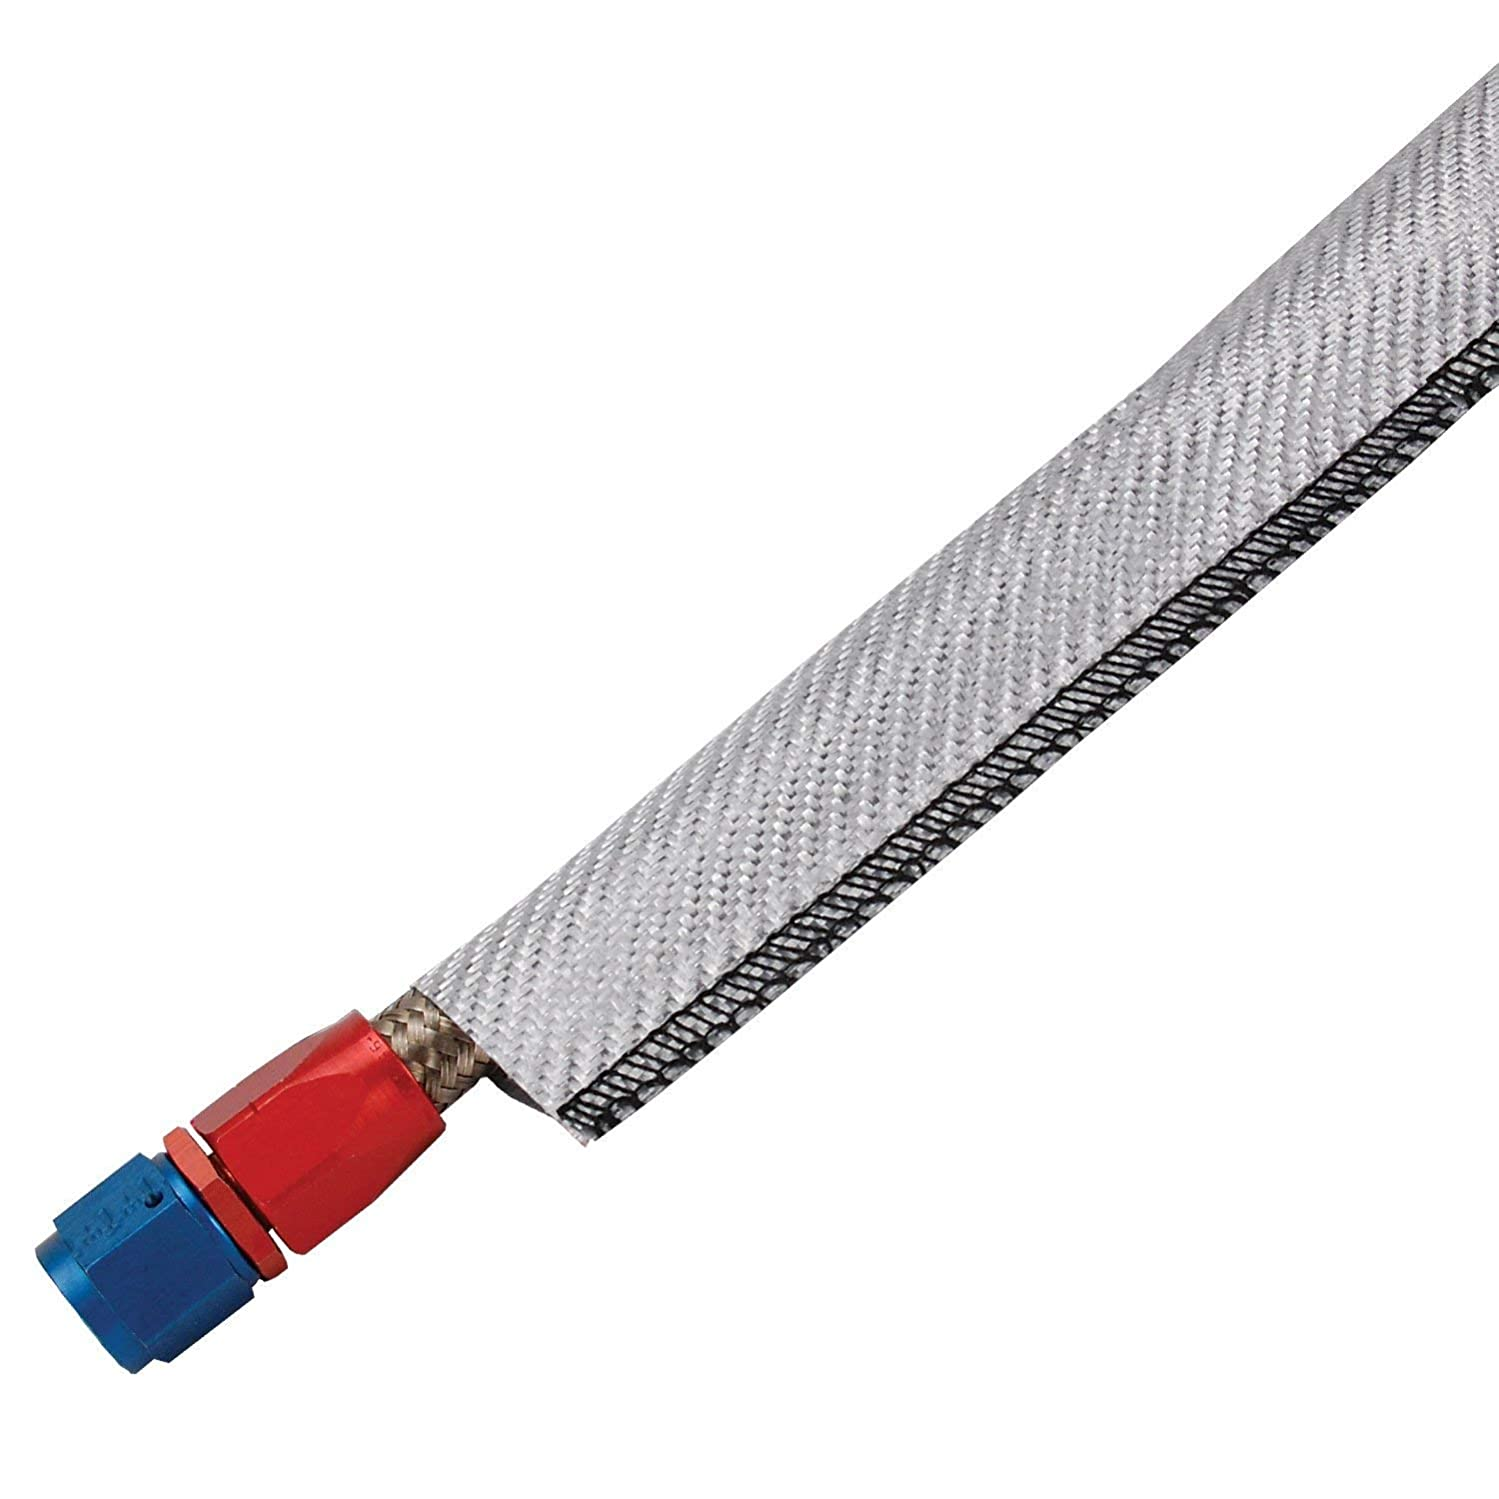 Design Engineering 010232 Ultra Sheath MA Lightweight Extreme Heat Protection for Hoses, Fuel Lines & Electrical Wiring, 0.75